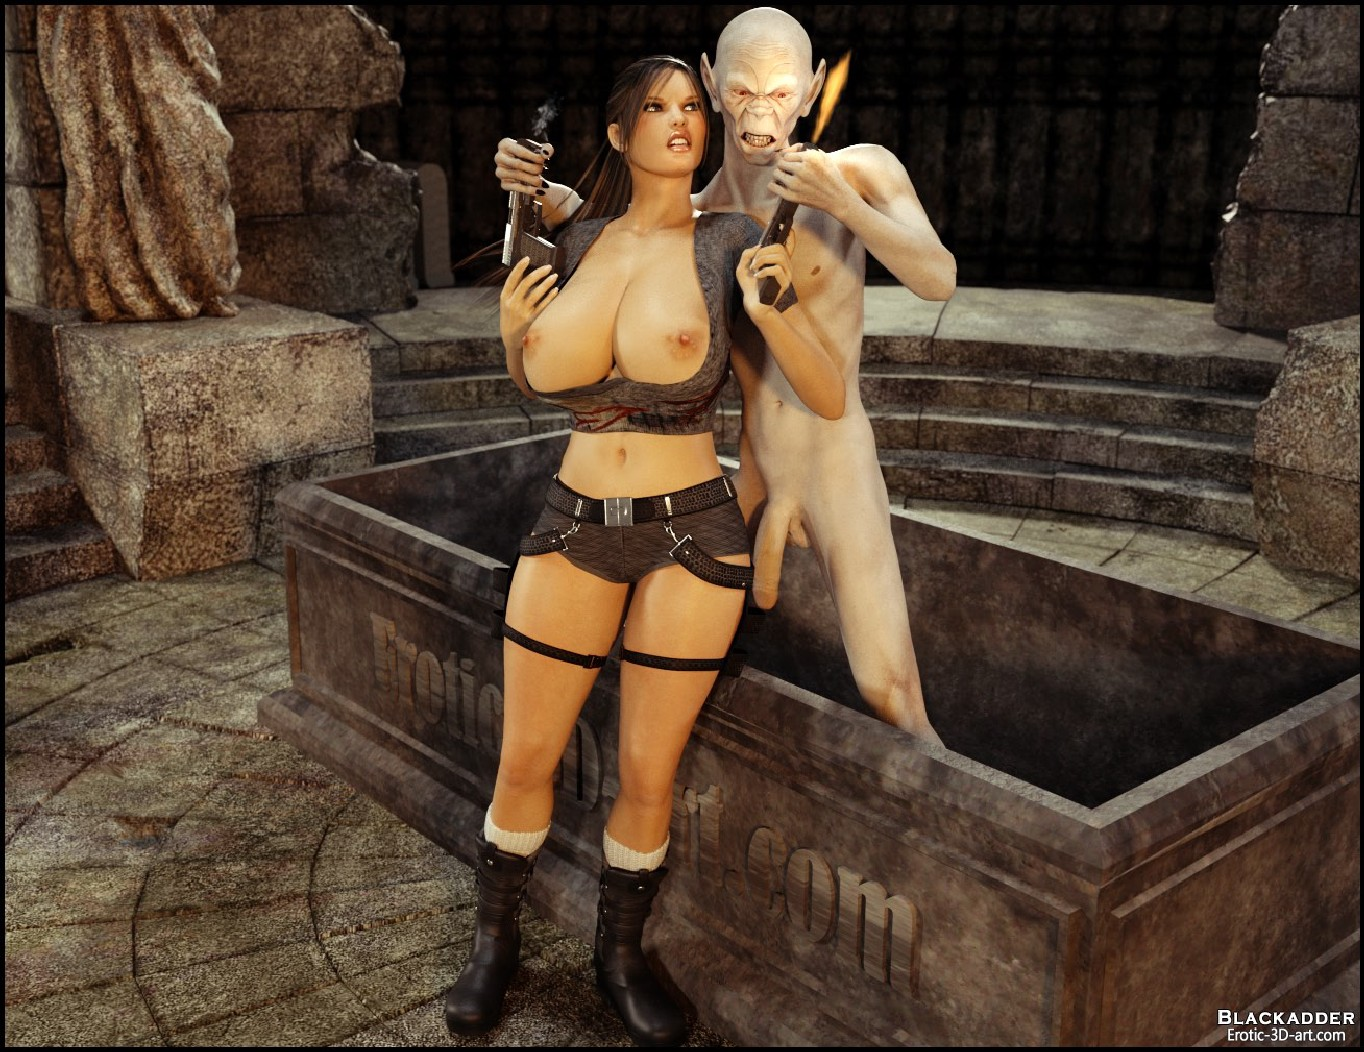 Lara croft fucked my monsters nudes tube